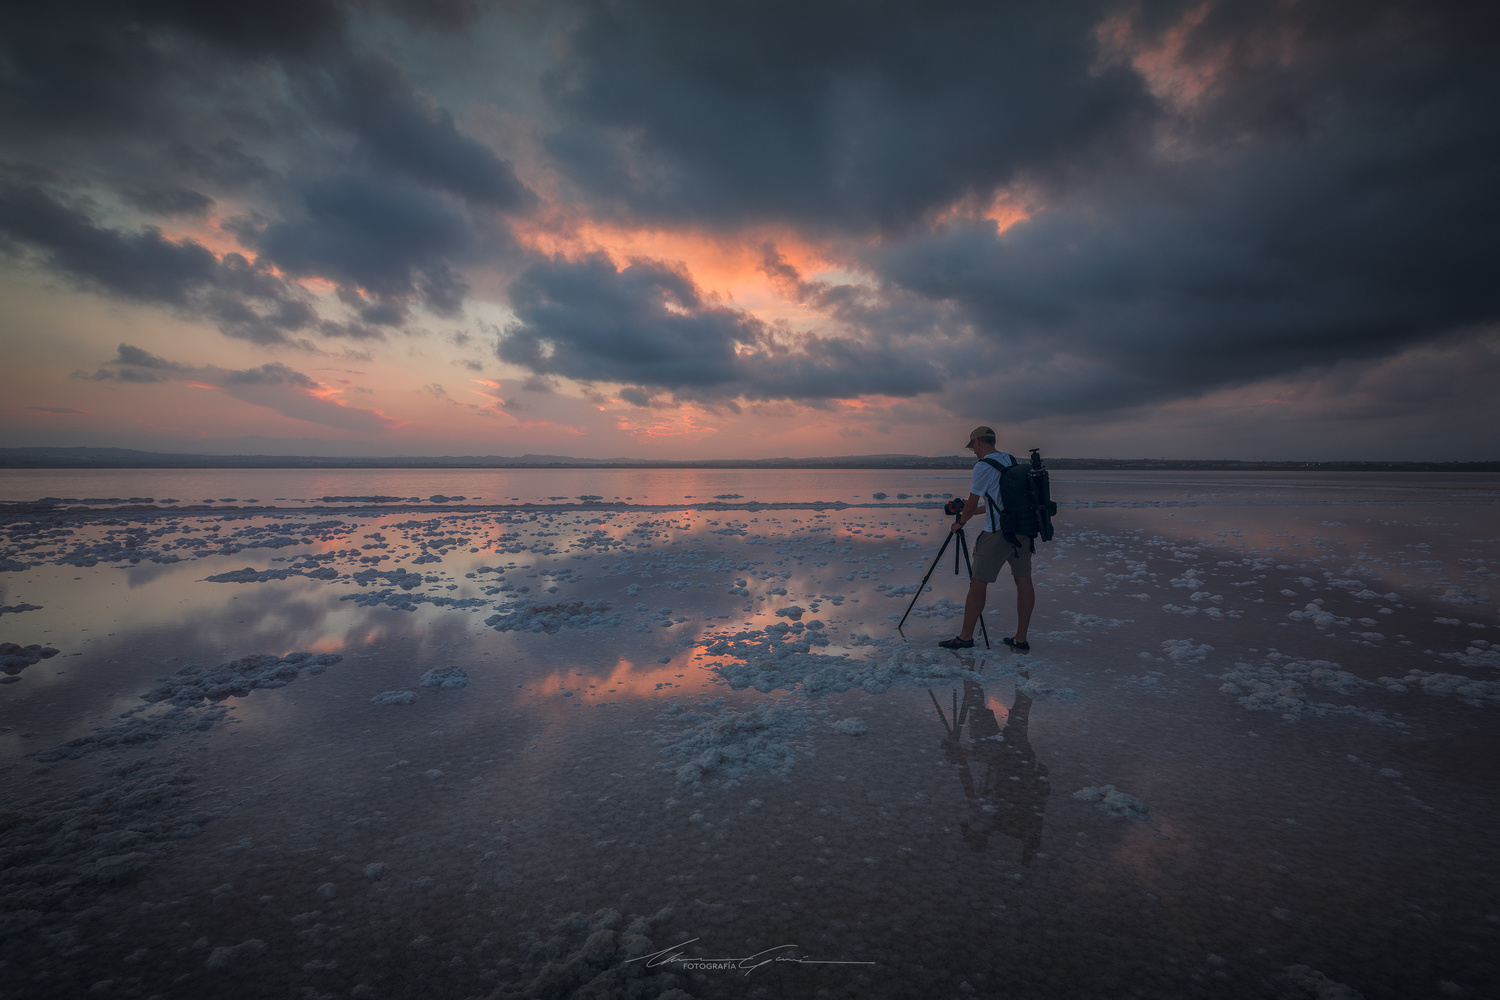 Where there's salt, there must be something to shoot by Manu García